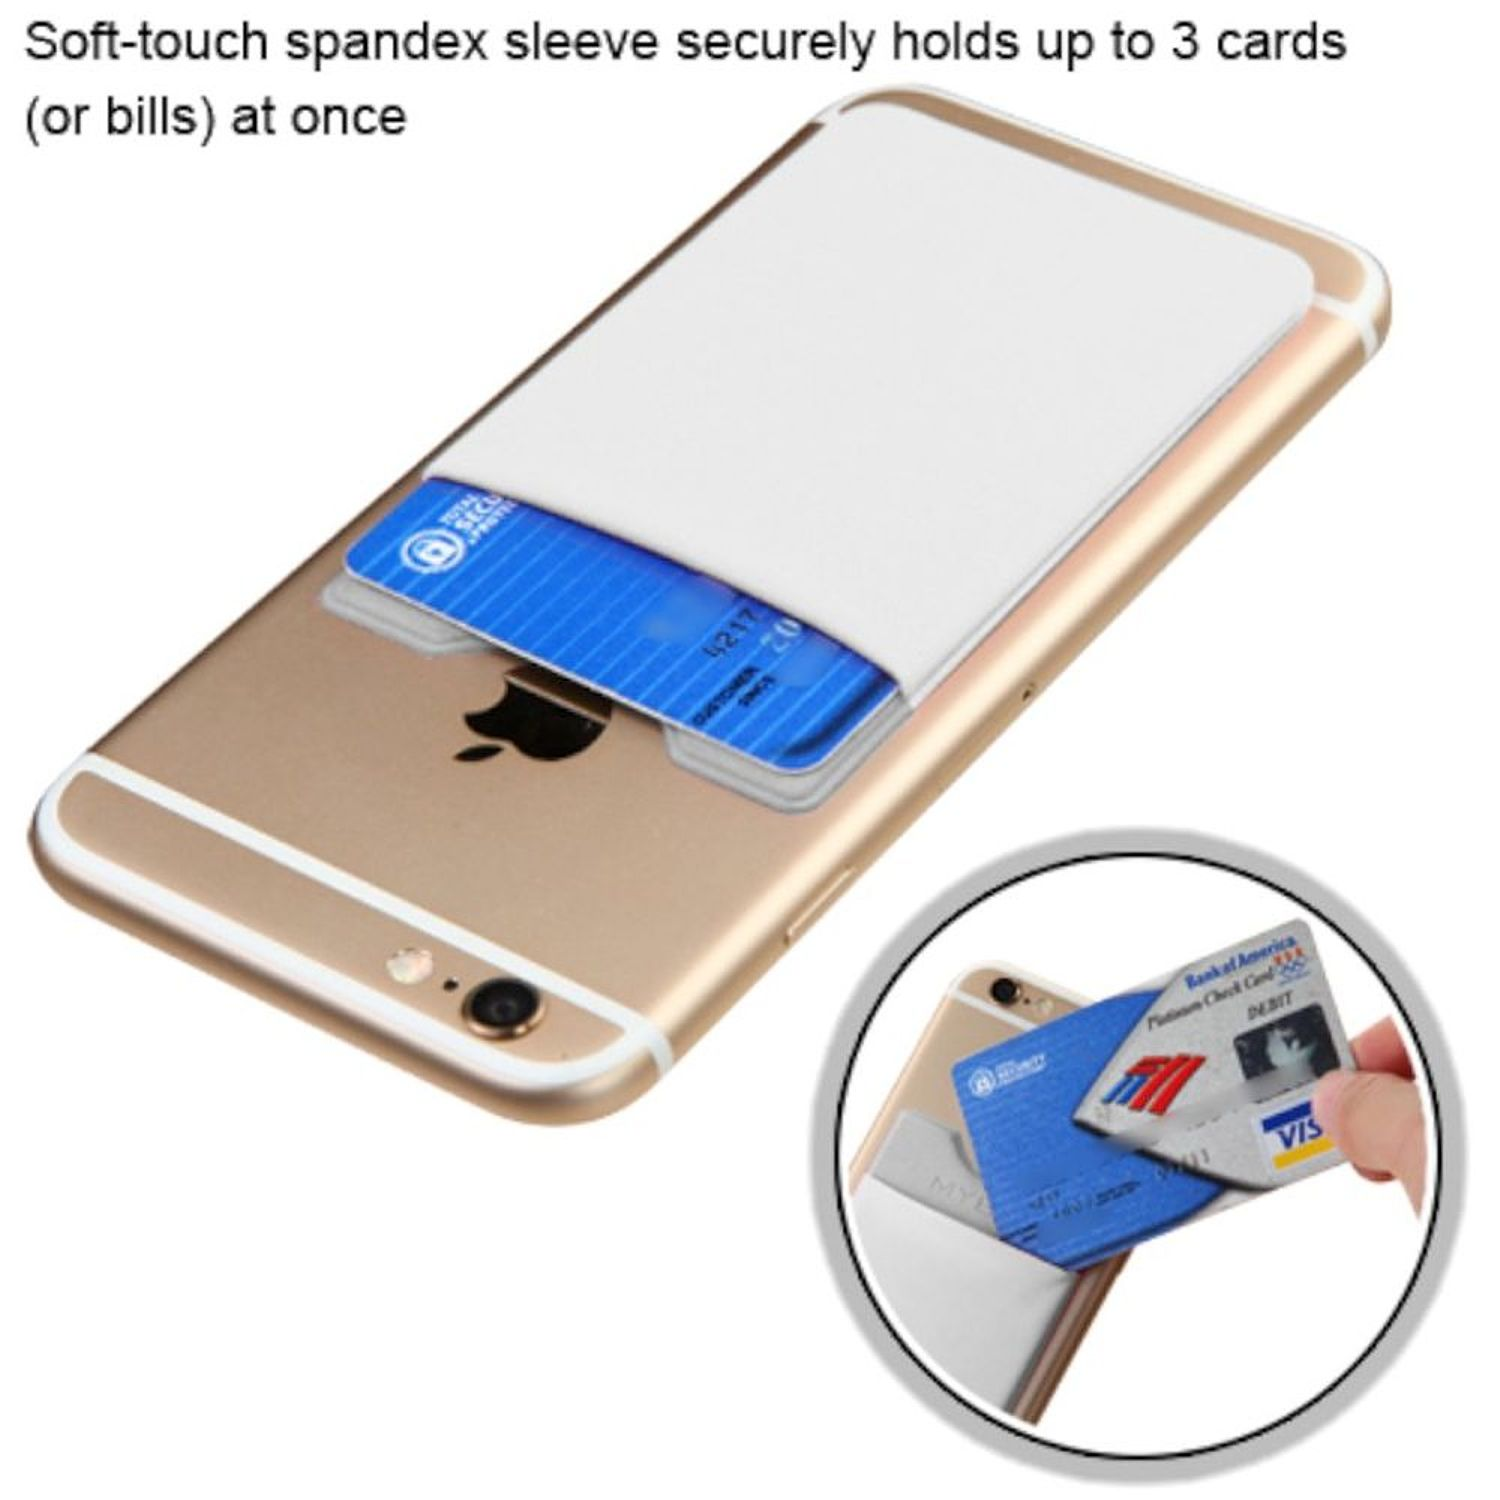 Insten 3M Adhesive Stick on Credit Card Wallet Pouch Cover for Cell Phone Apple iPhone X 8 7 6 6s Plus 5s SE Samsung Galaxy J7 J3 S9 S8 Note 8 LG V30 Stylo 3 G6 White